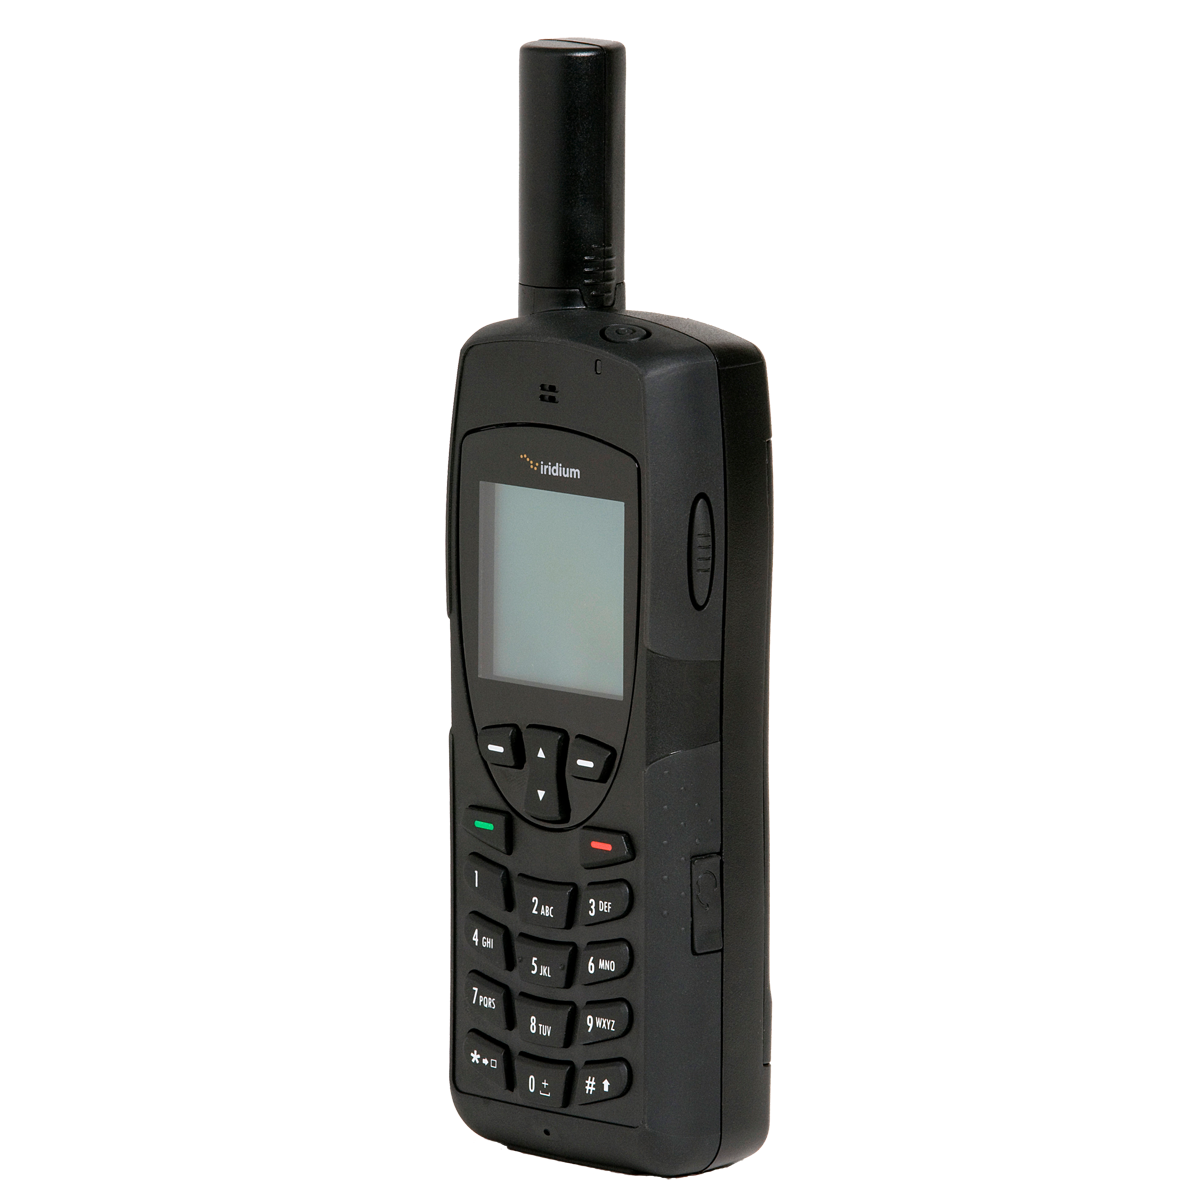 satellite phones Always stay connected with our range of satellite phones and communications solutions including satellite phone rental, call plans, data and broadband.